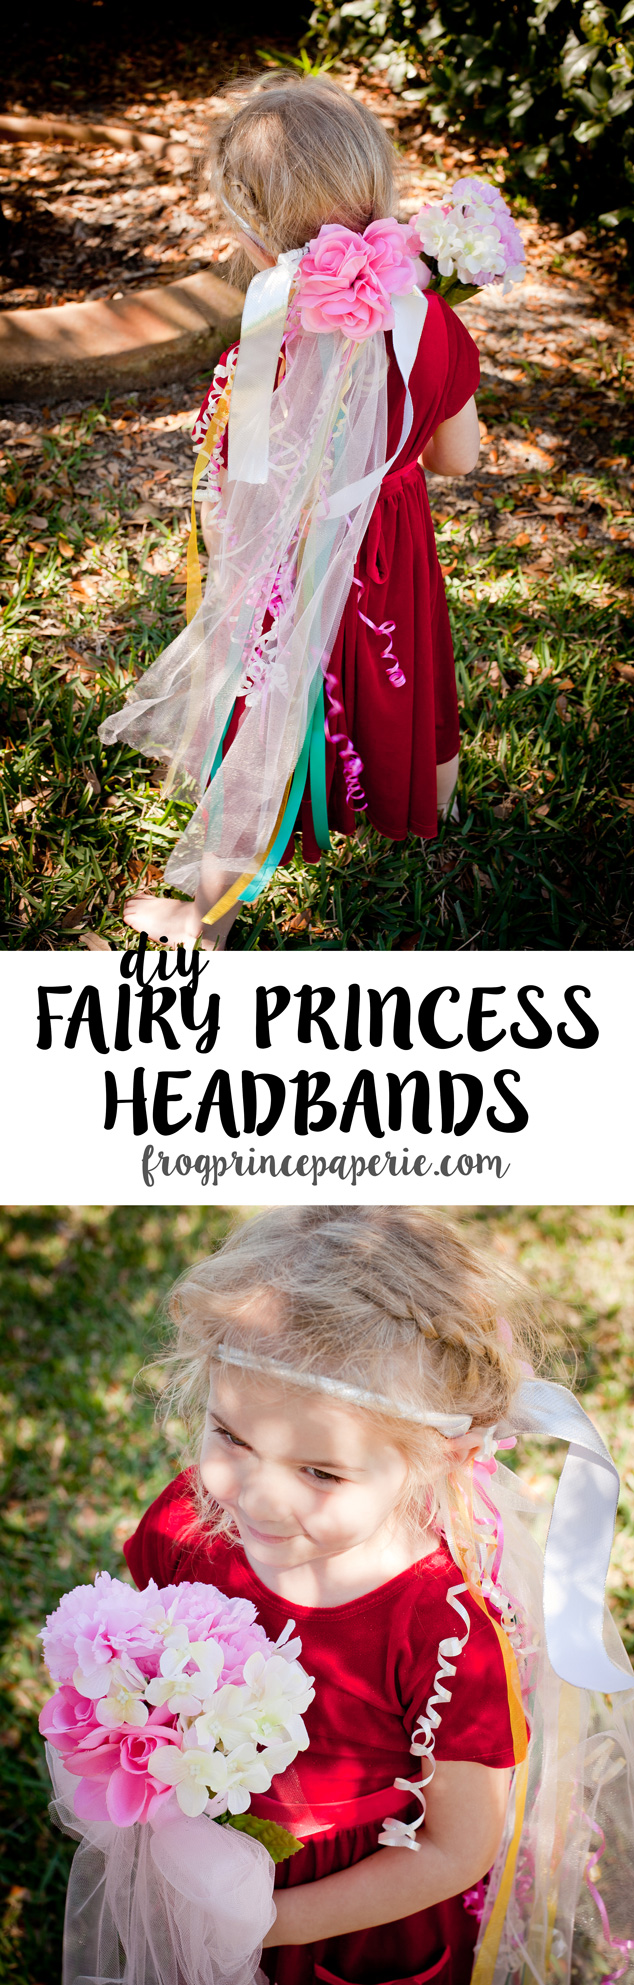 This quick kid craft to make a DIY fairy headband will keep the kids entertained for hours--both making the headband and playing pretend after!